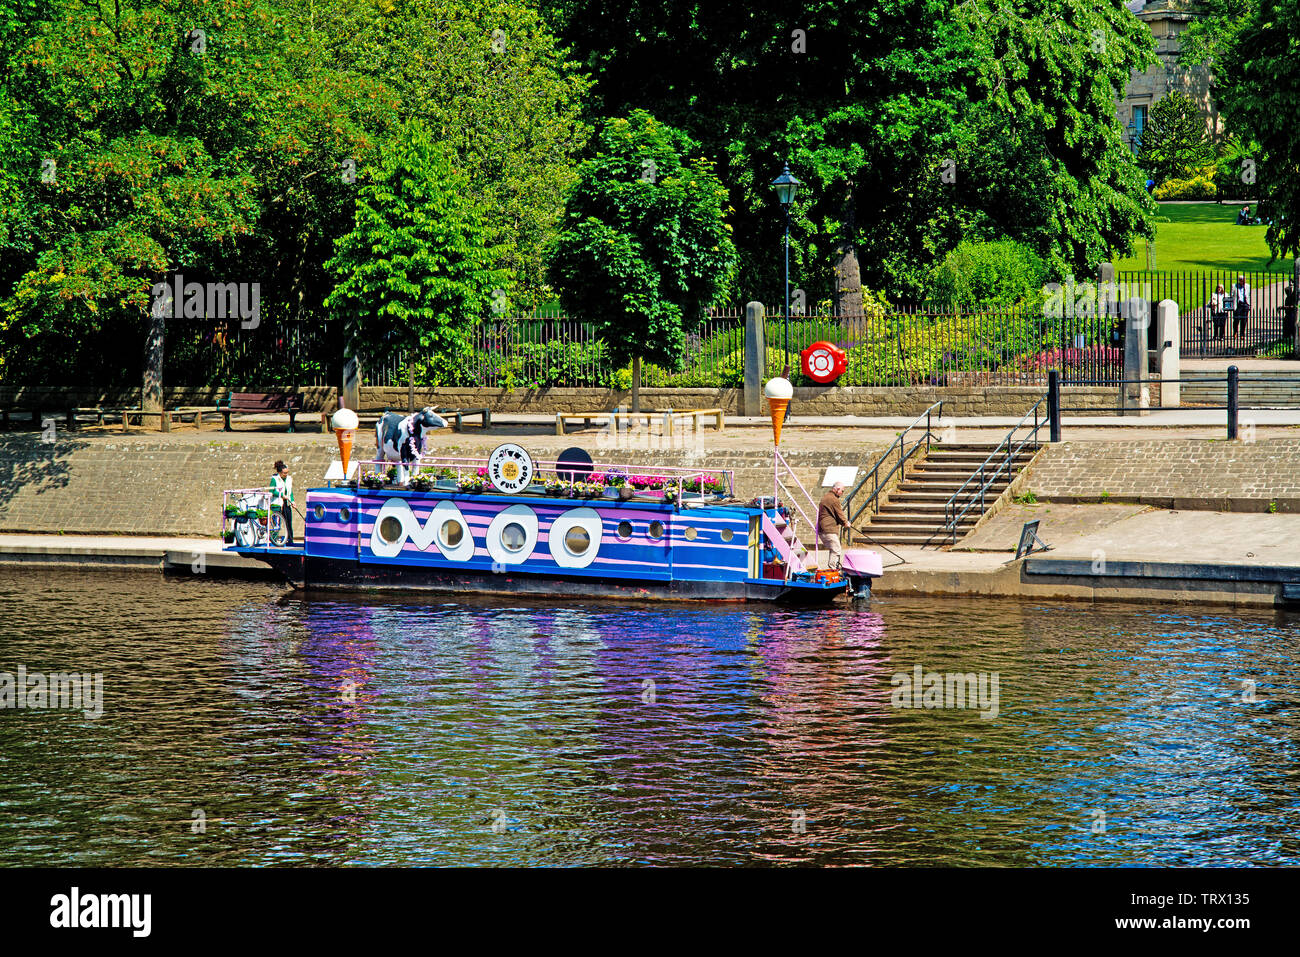 The Full Moo Ice Cream Boat, River Ouse, York, England Stock Photo